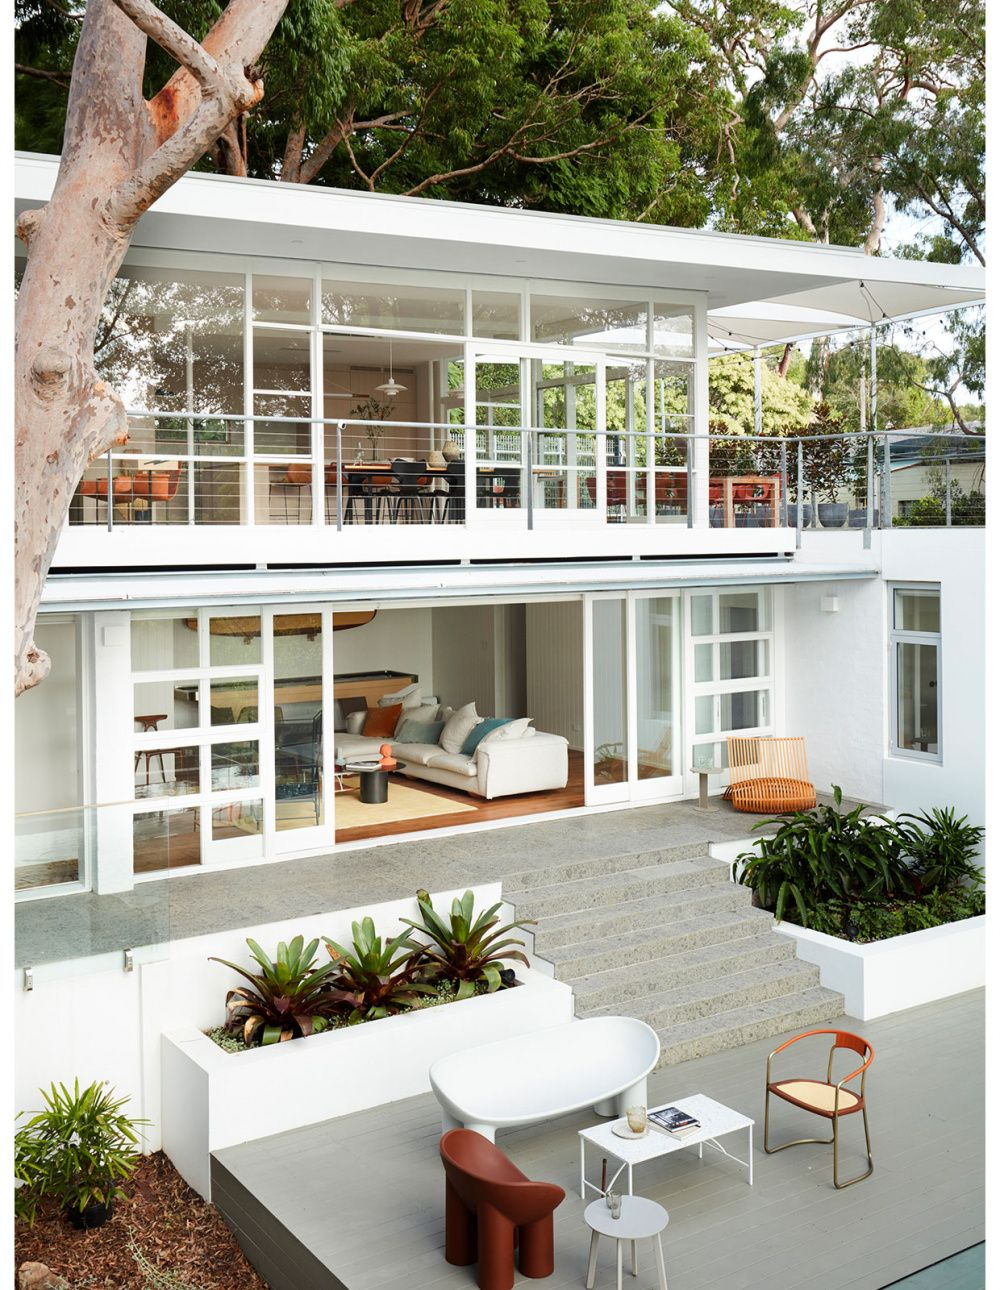 An Amazing Mid-Century Home Gets A High-Tech Makeover!